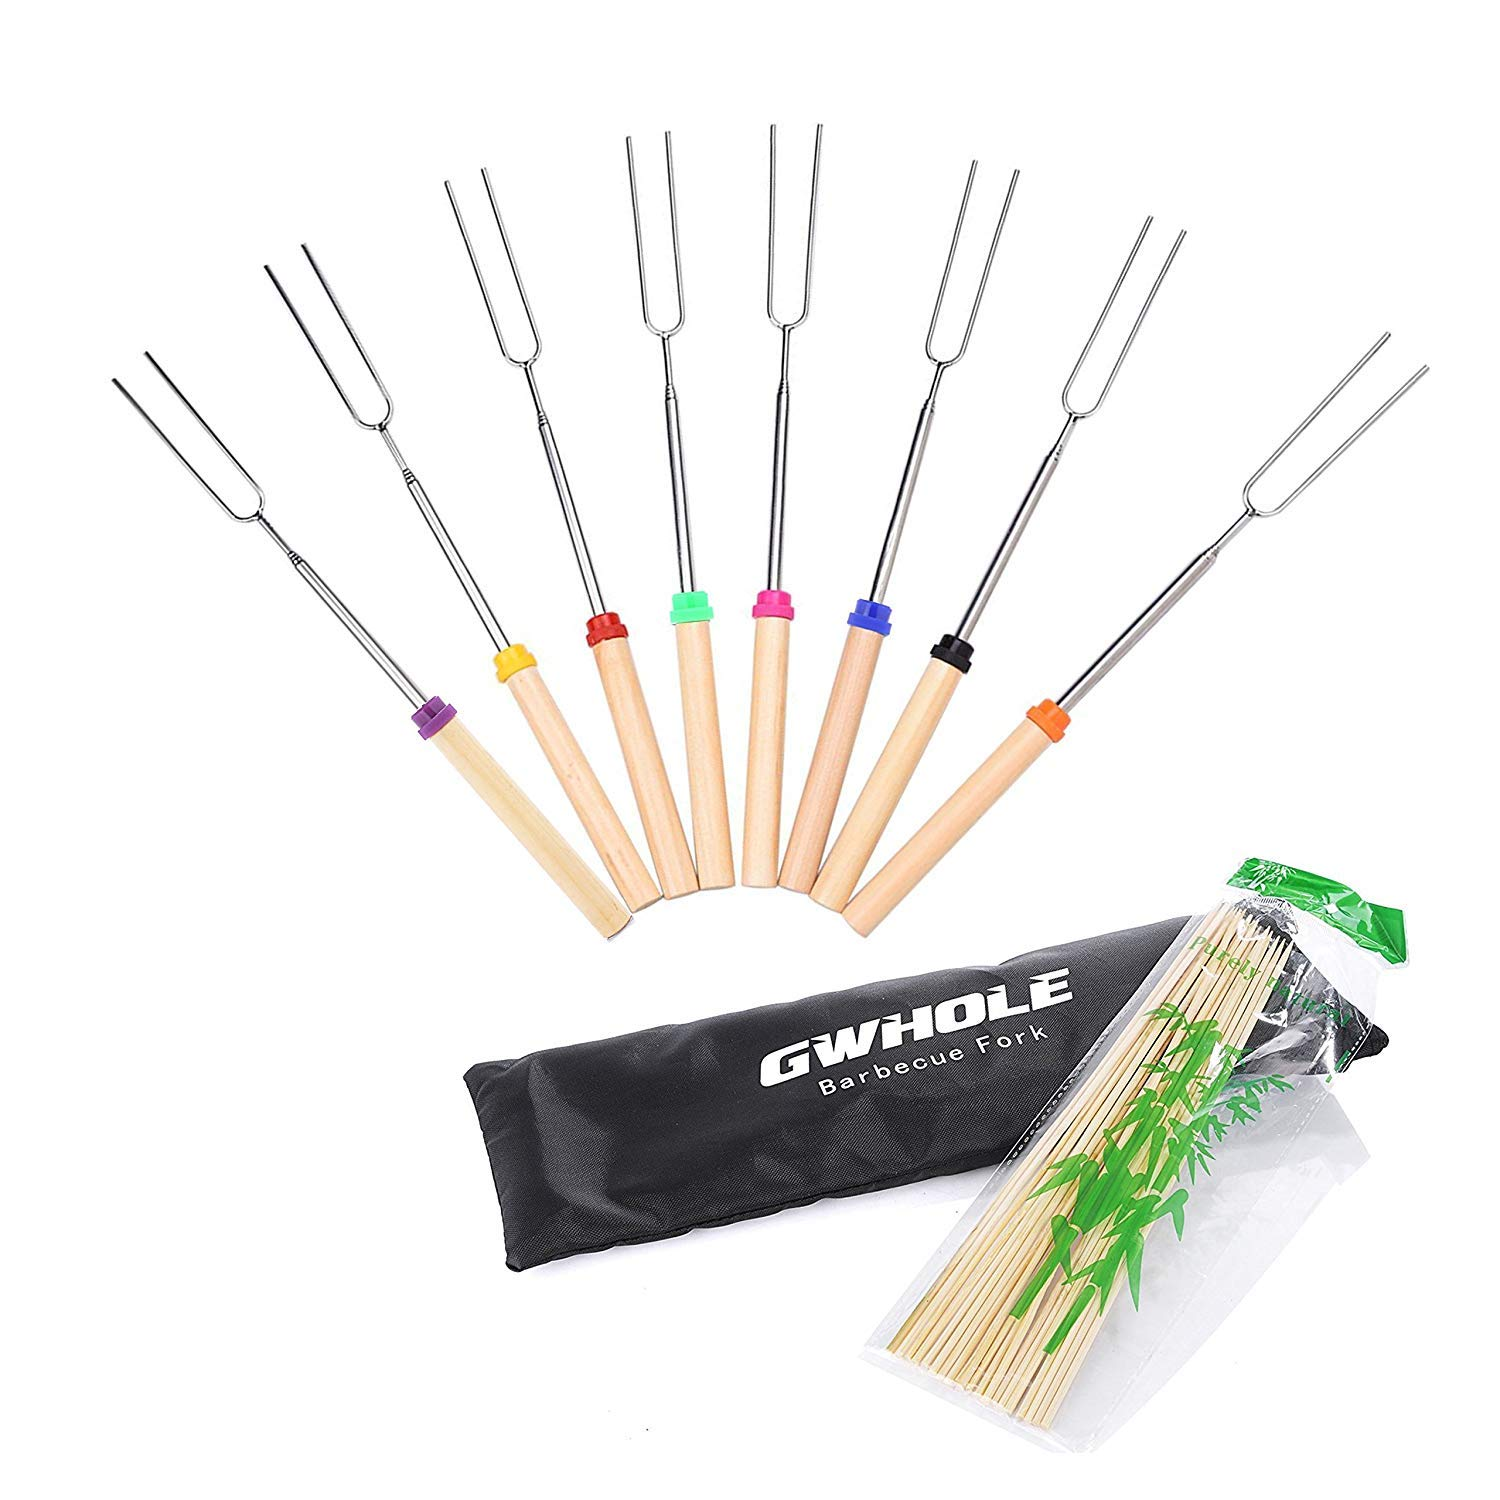 WWQ Extendable Marshmallow Roasting Sticks BBQ Forks 31-82cm with Bamboo Sticks and Canvas Pouch, Set of 8 [One Year Warranty]